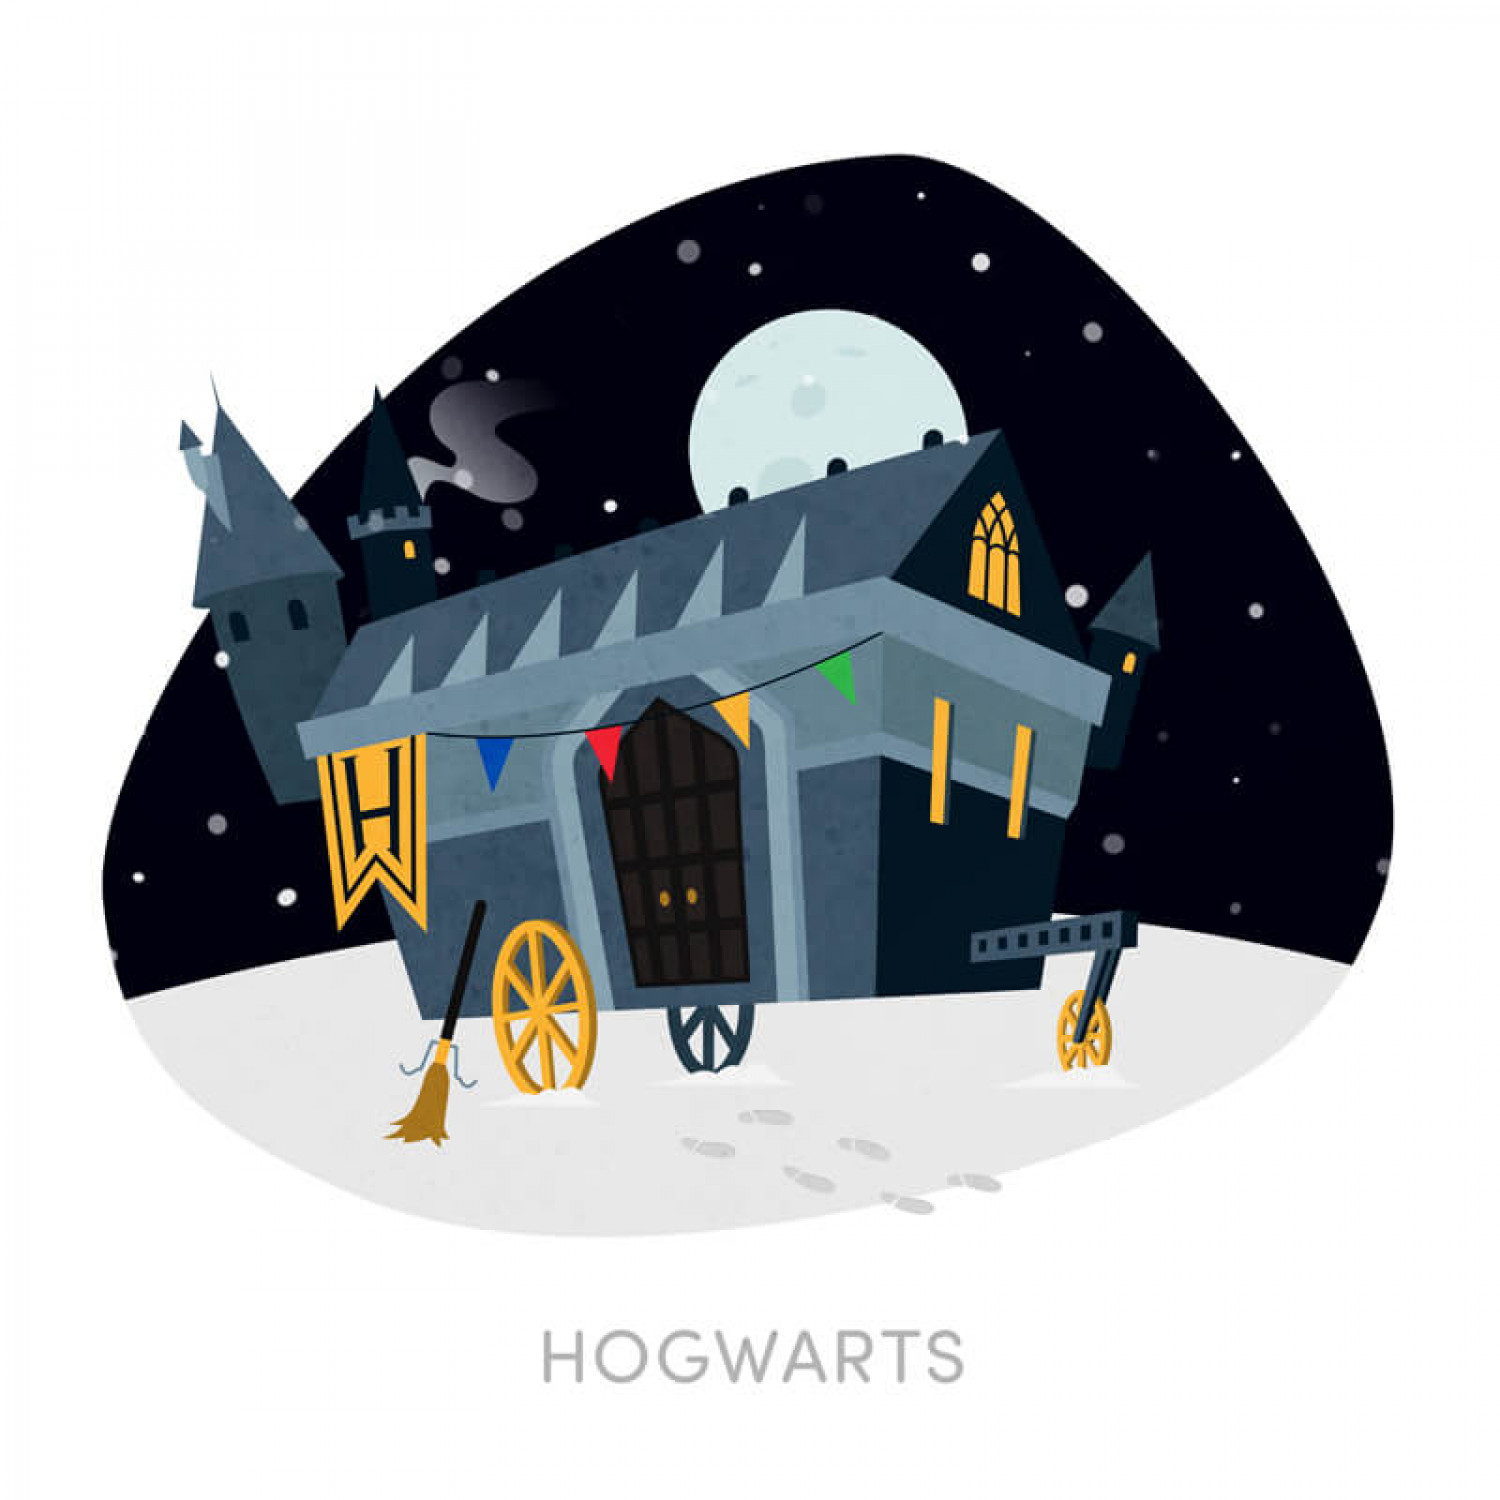 Fictional Buildings Reimagined as Caravans or Trailers: Hogwarts Infographic